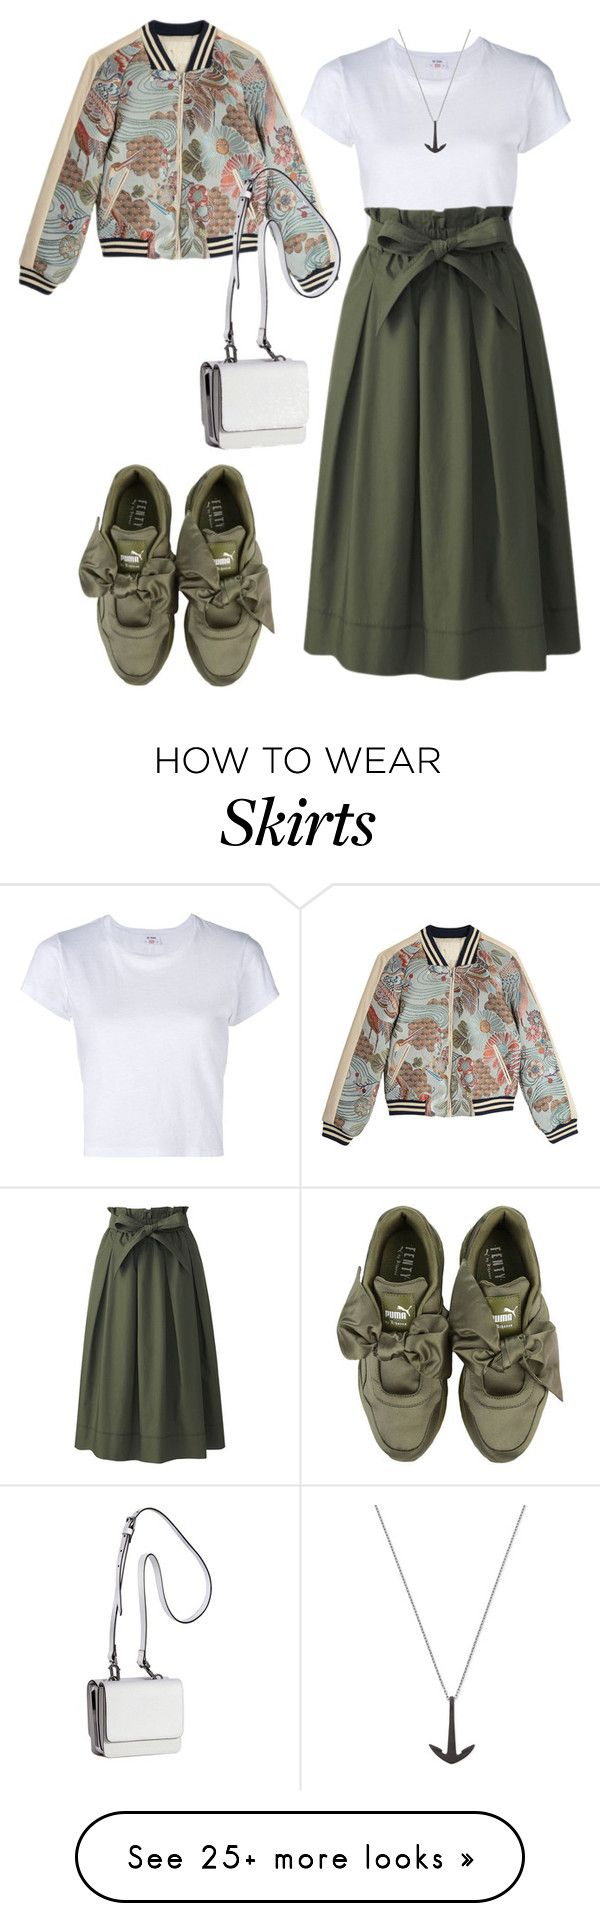 """bomber jacket and midi skirt"" by asti-pramitha on Polyvore featuring RE/DONE, Uniqlo, Puma, MIANSAI, Maje and Kendall + Kylie"